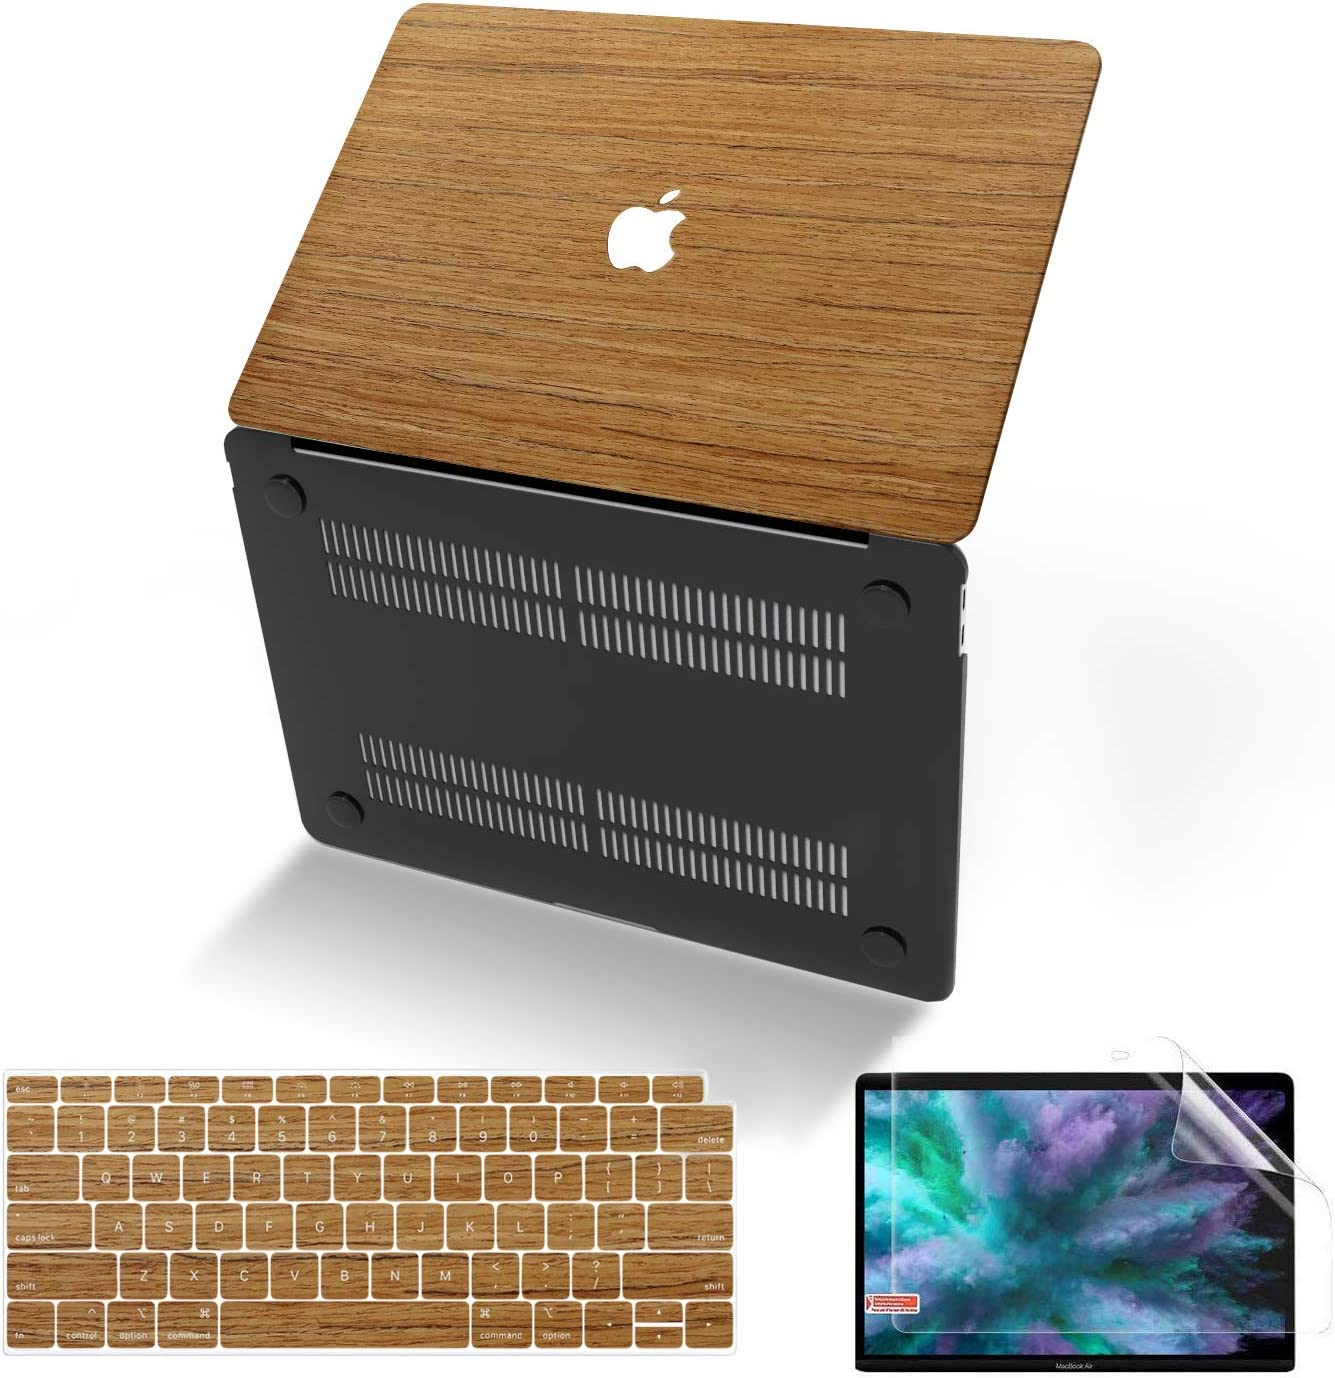 MacBook Air 13 Inch Case 2020 2019 2018 Release A2179 A1932, Anban Slim Wooden Hard Corner Protective Shell Cover with Keyboard & Screen Protector Compatible Mac Air 13 with Retina Display & Touch ID